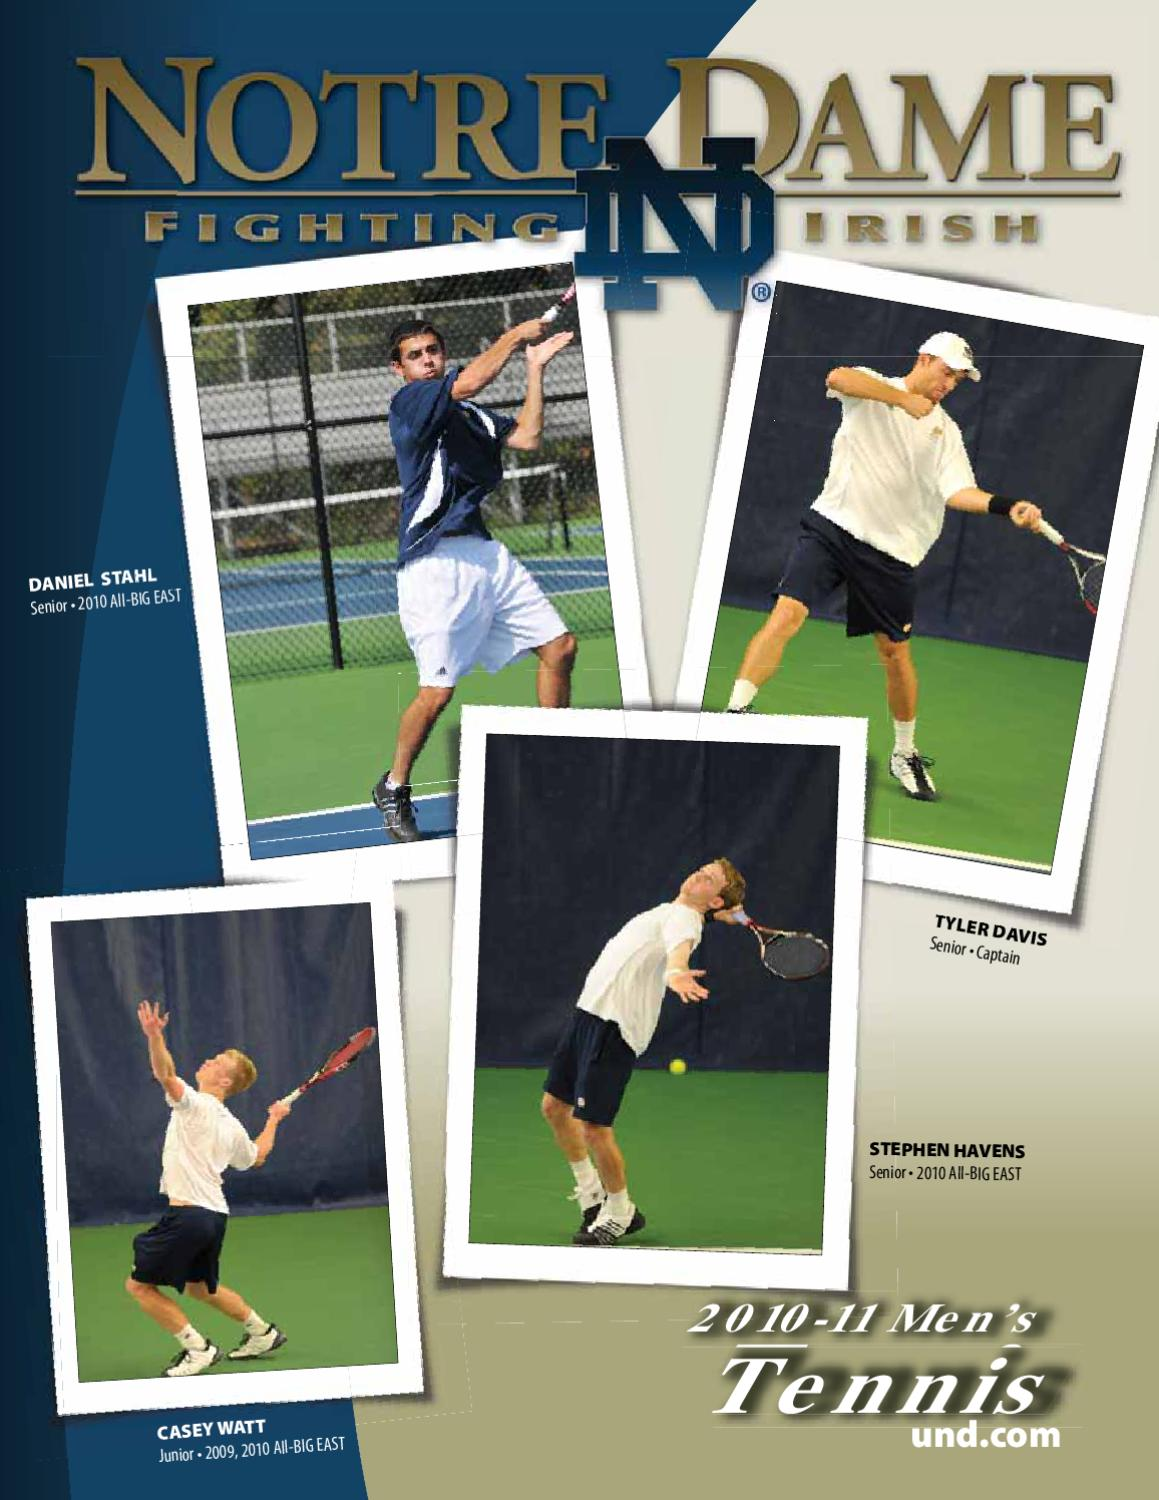 Tennis Guide Notre Issuu - Media 2010-11 Men's Dame Chris By Masters